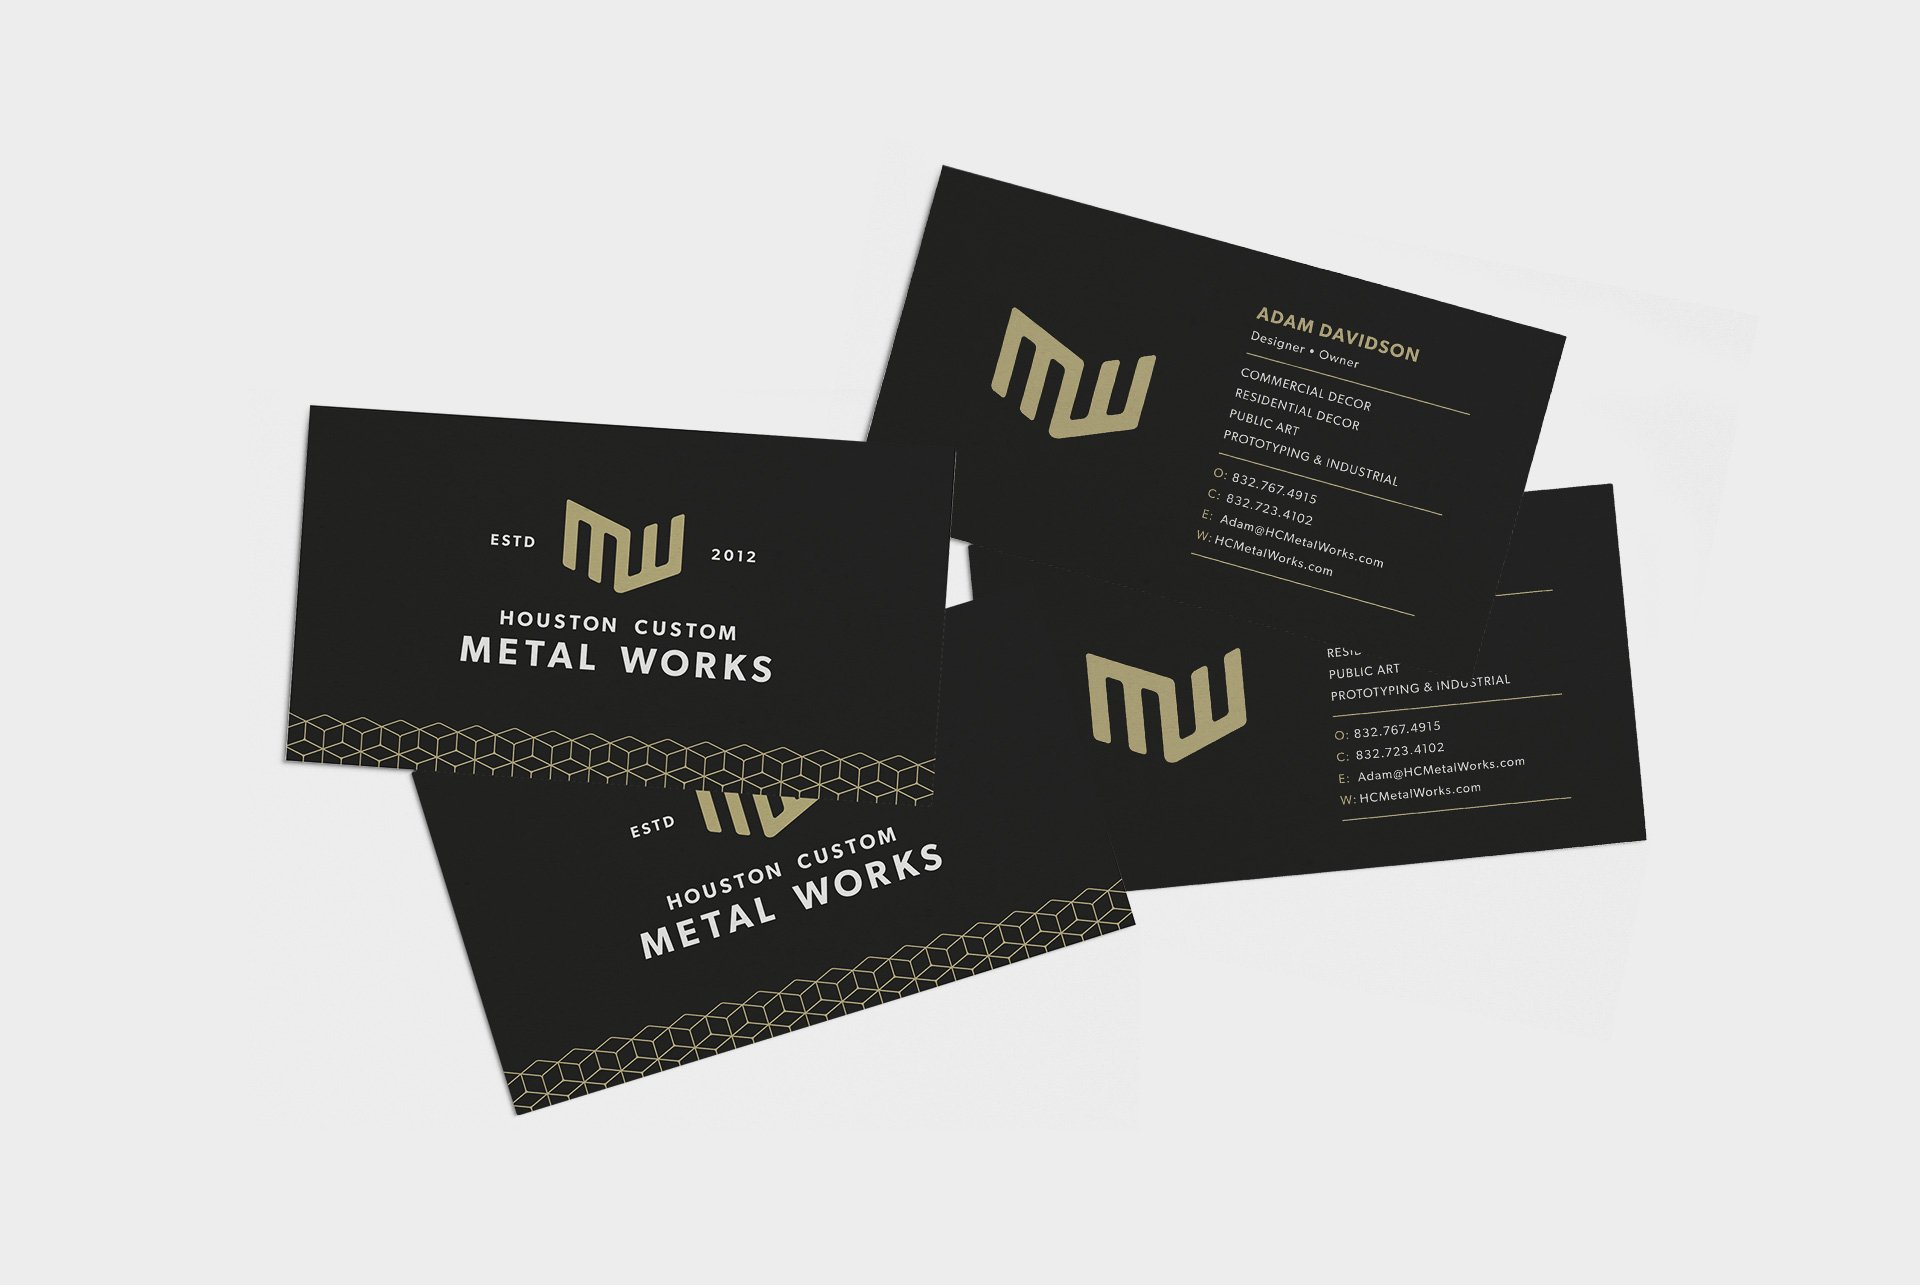 Houston Custom Metal Works Business Card Designs